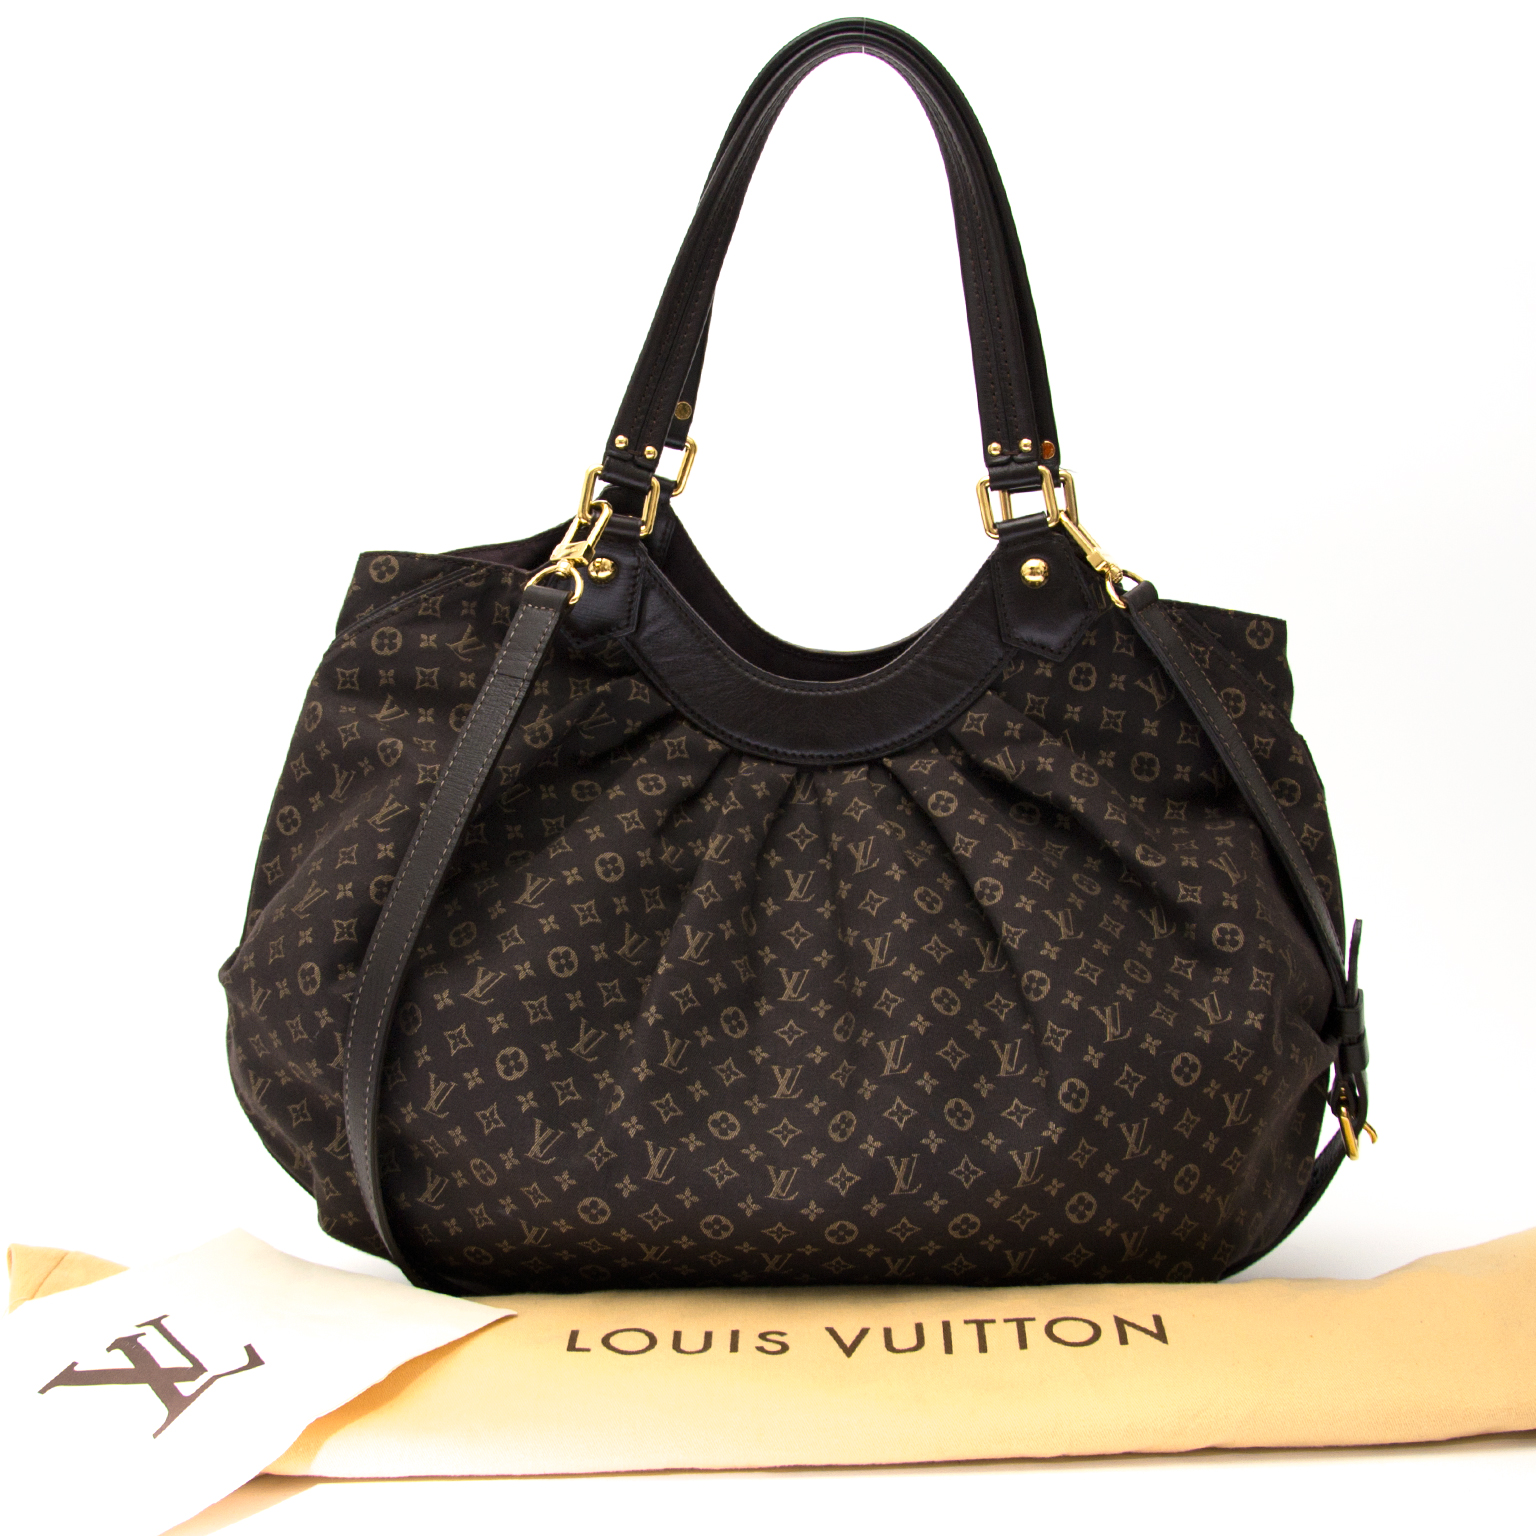 0f5f0ebfcc8e ... labellov. shop safe online at the best price Louis Vuitton Monogram  Idylle Fantaisie Fusain like new webshop